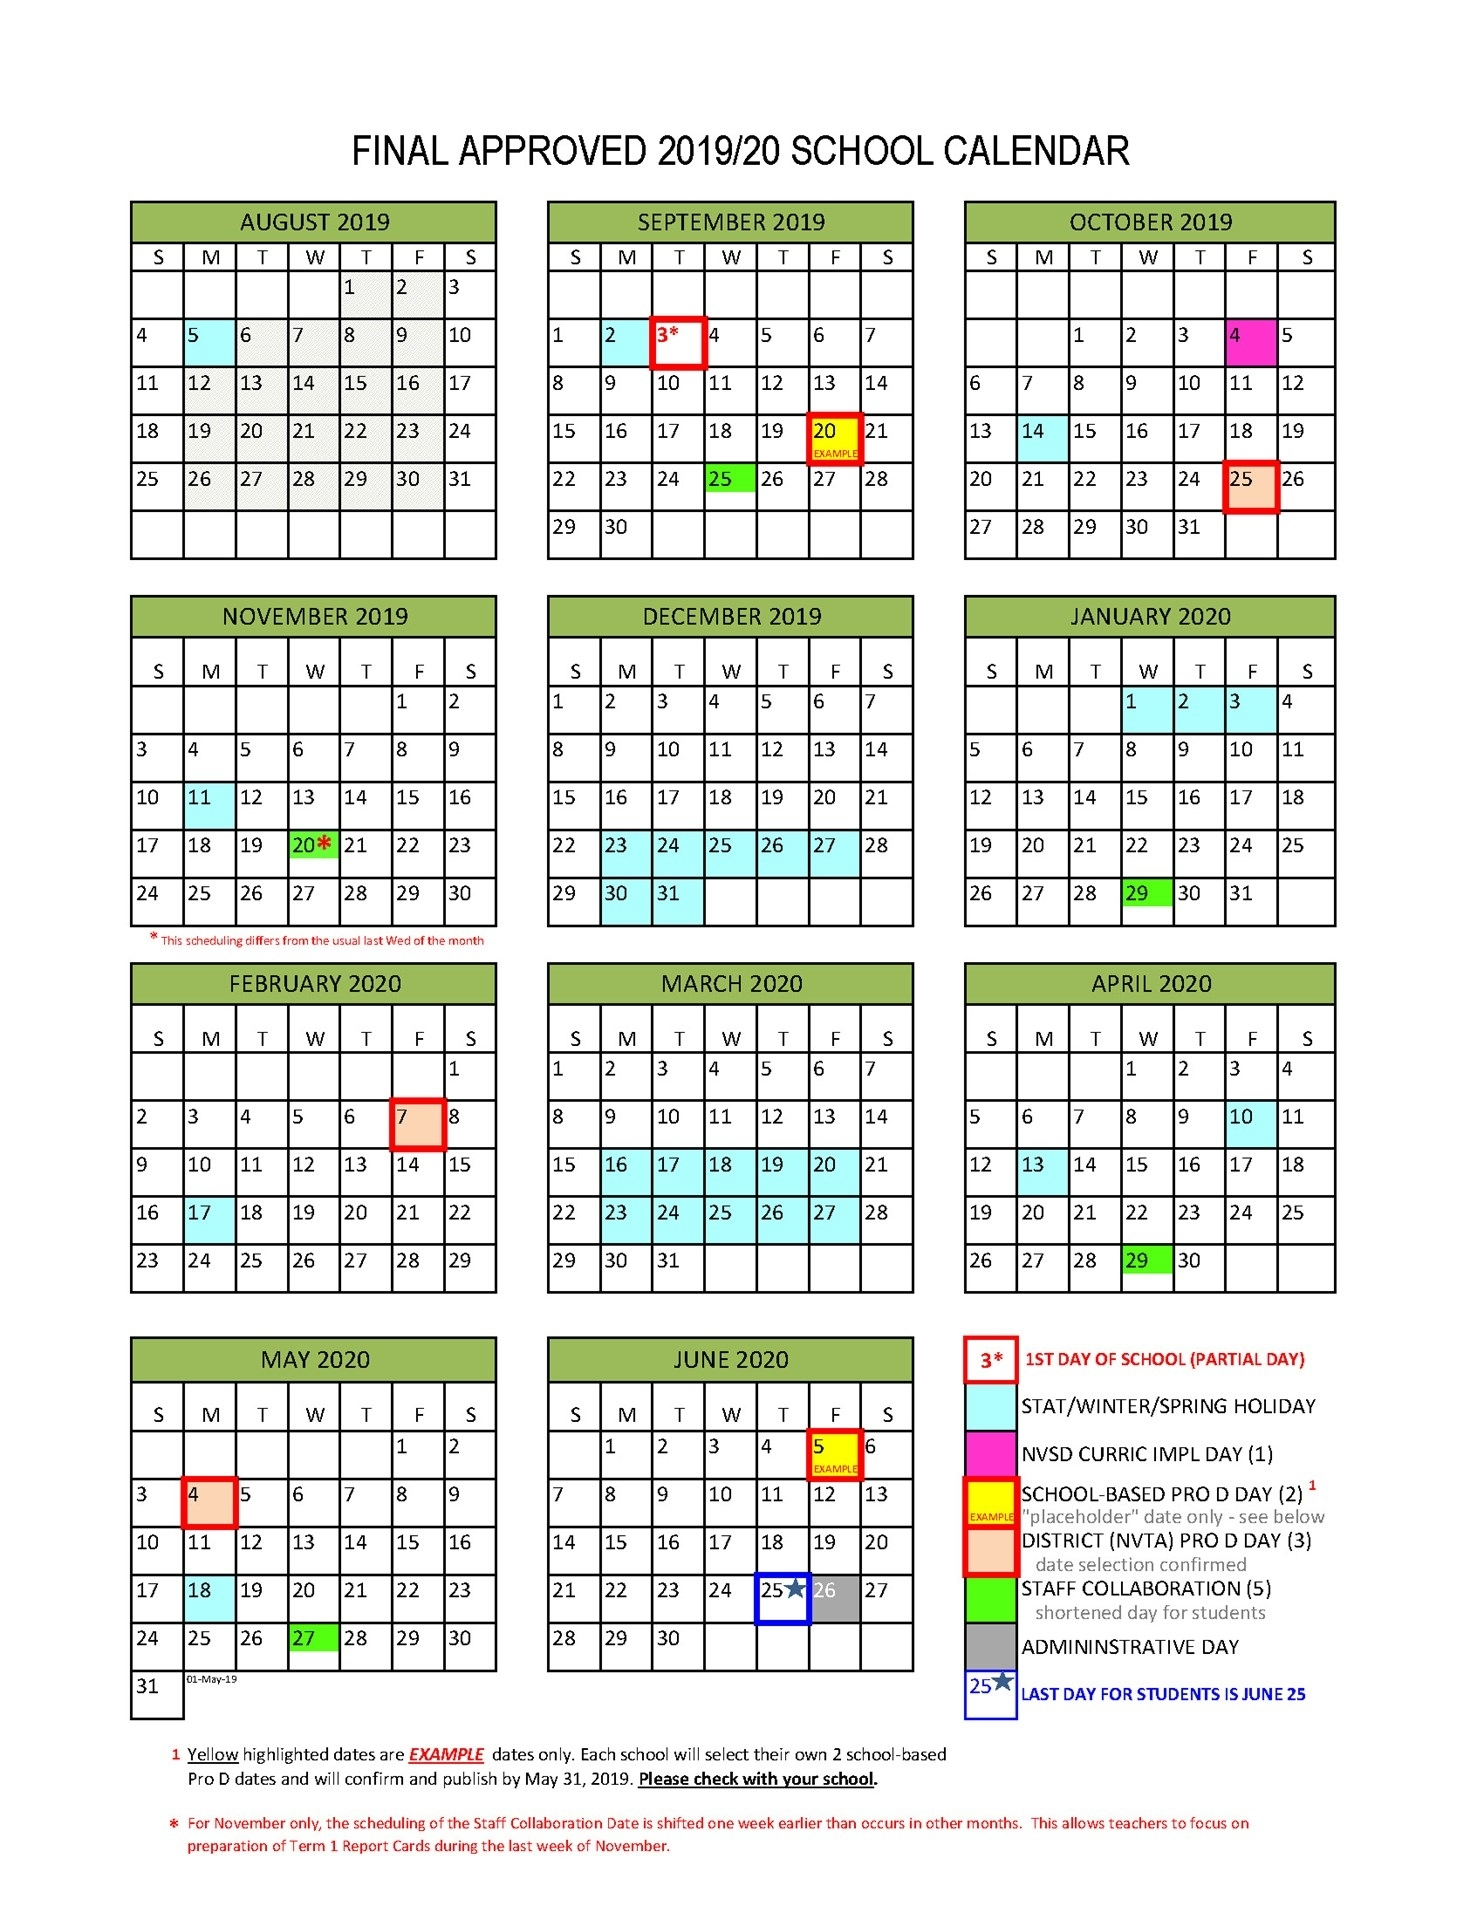 District Calendar - North Vancouver School District intended for Special Days In The School Year 2019-2020